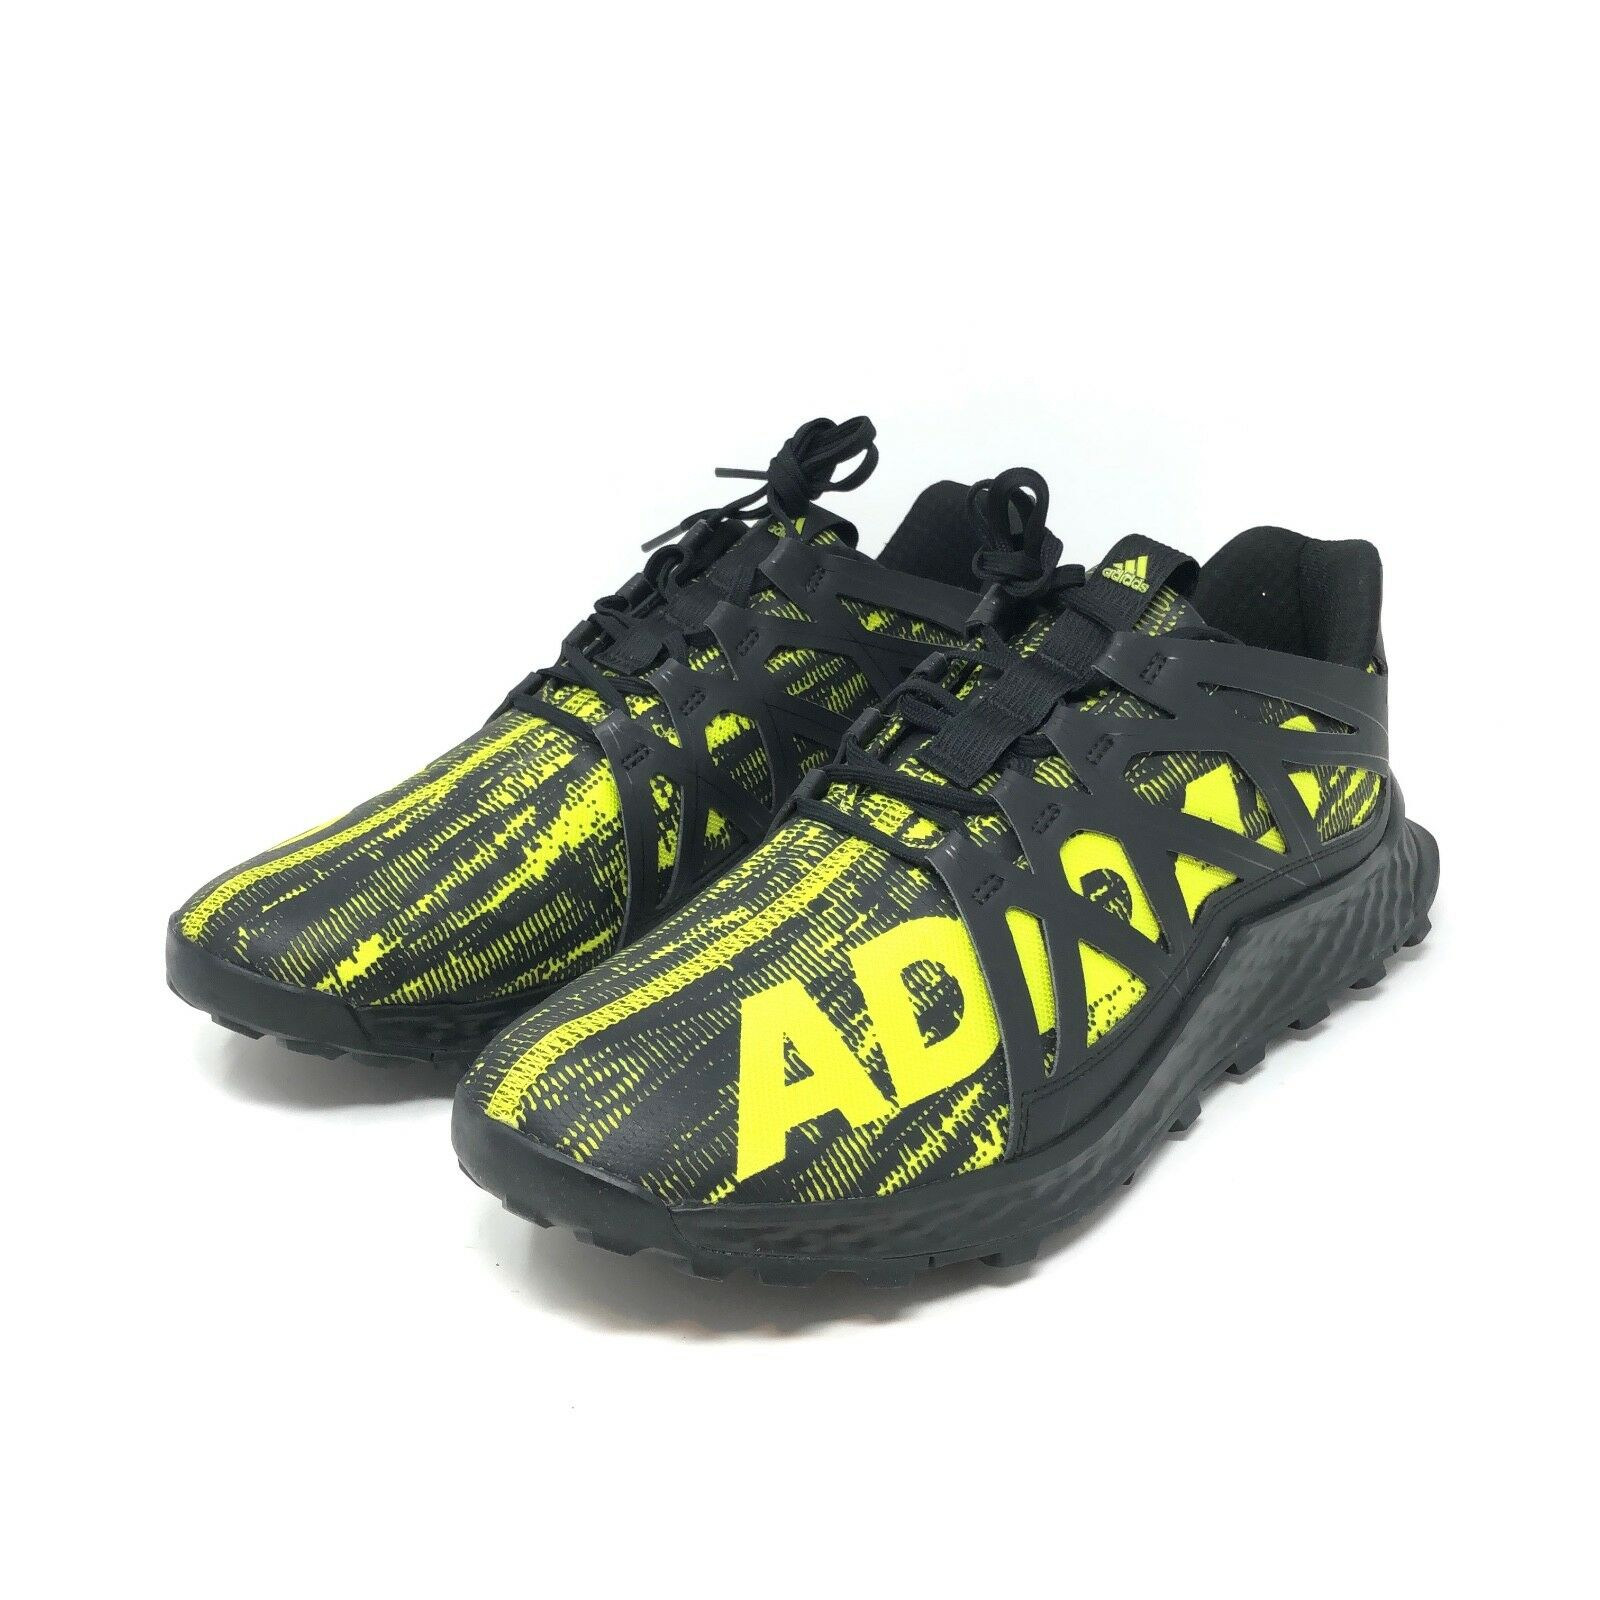 Adidas Mens Vigor Bounce Trail Runner shoes Black Yellow Size 11.5